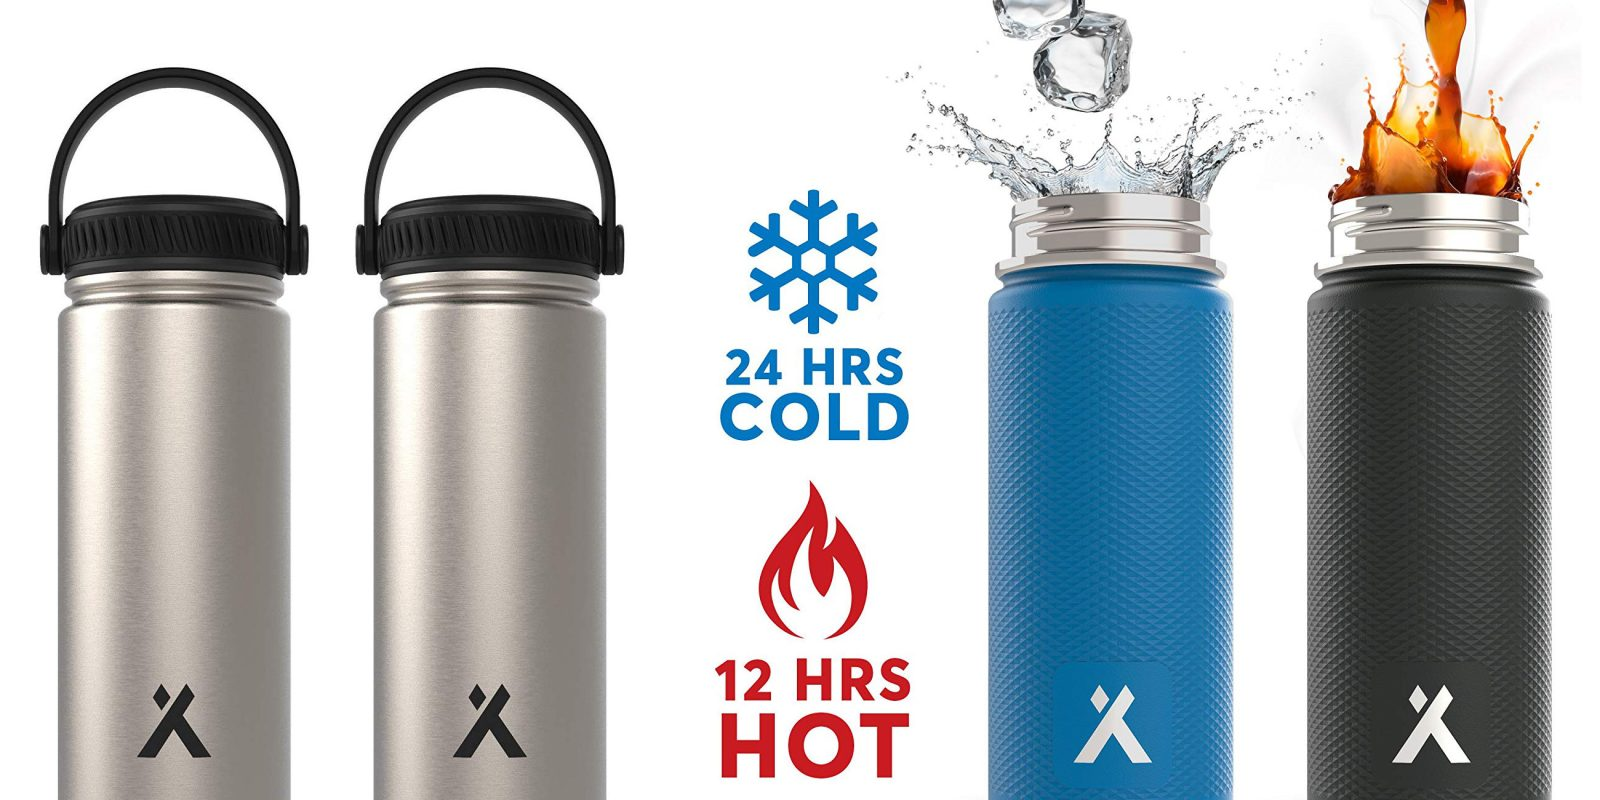 77ed0a2fdd Bring home some Bear Grylls Vacuum Insulated Water Bottles for $10 Prime  shipped (50% off)